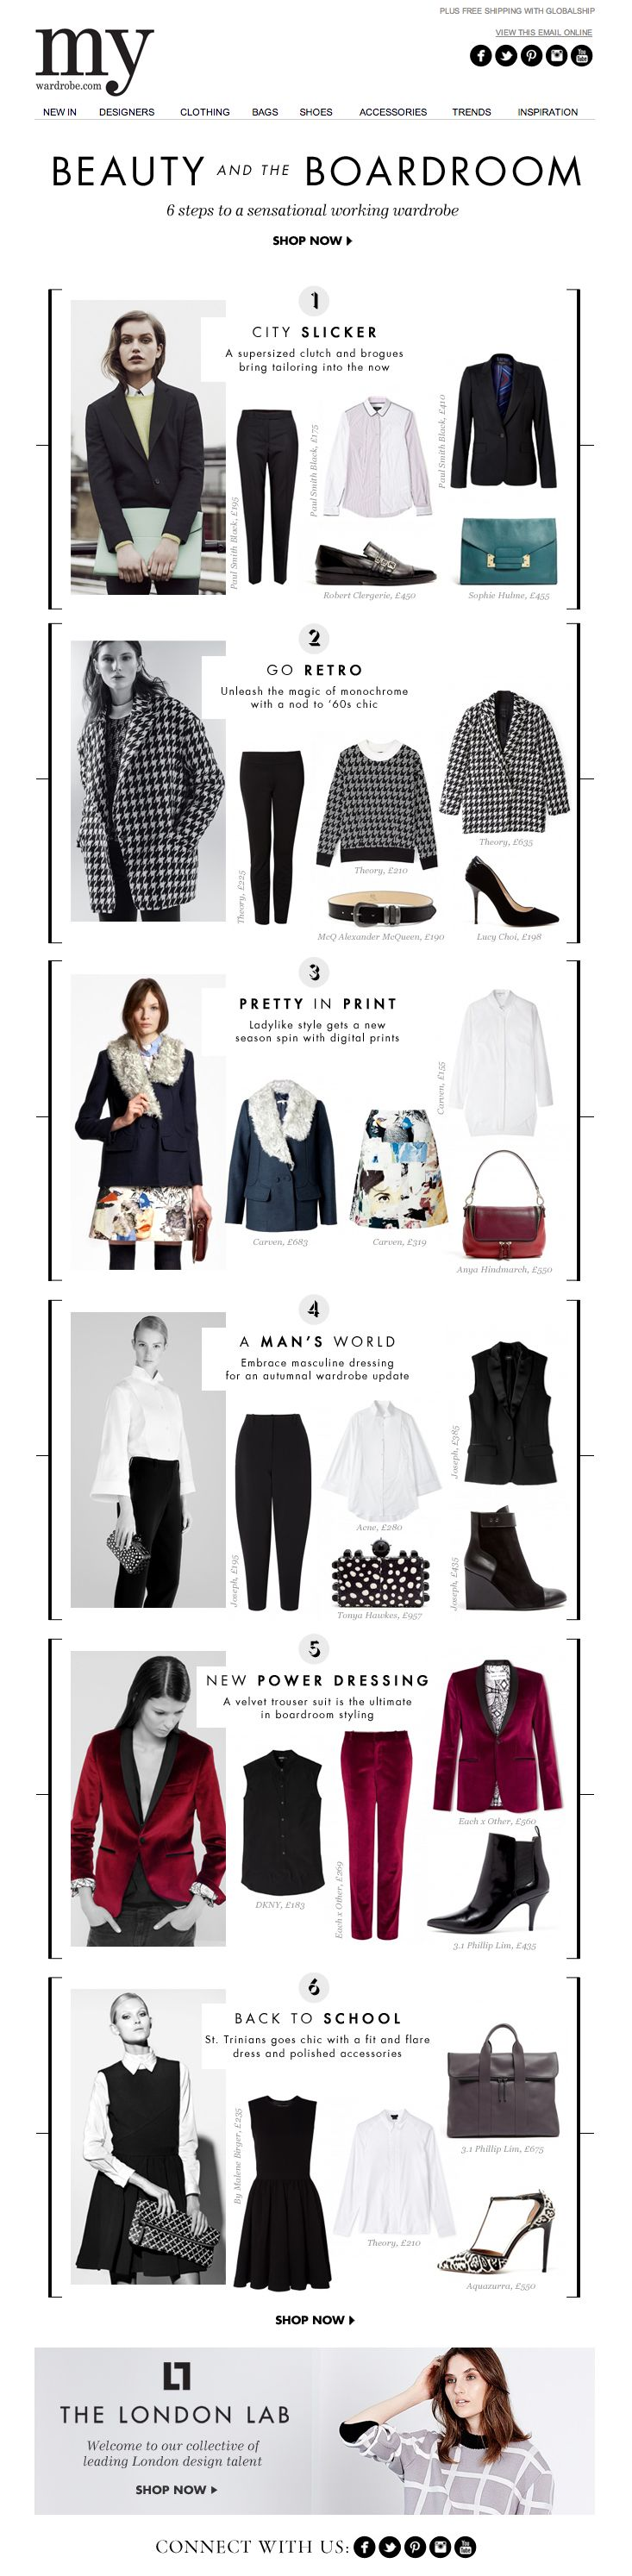 One version of the shopping site. Because of clear divisions and illustration of examples, the reader can understand at first glance whether it refers to her interest and tastes or not. So probably one of the alternatives...